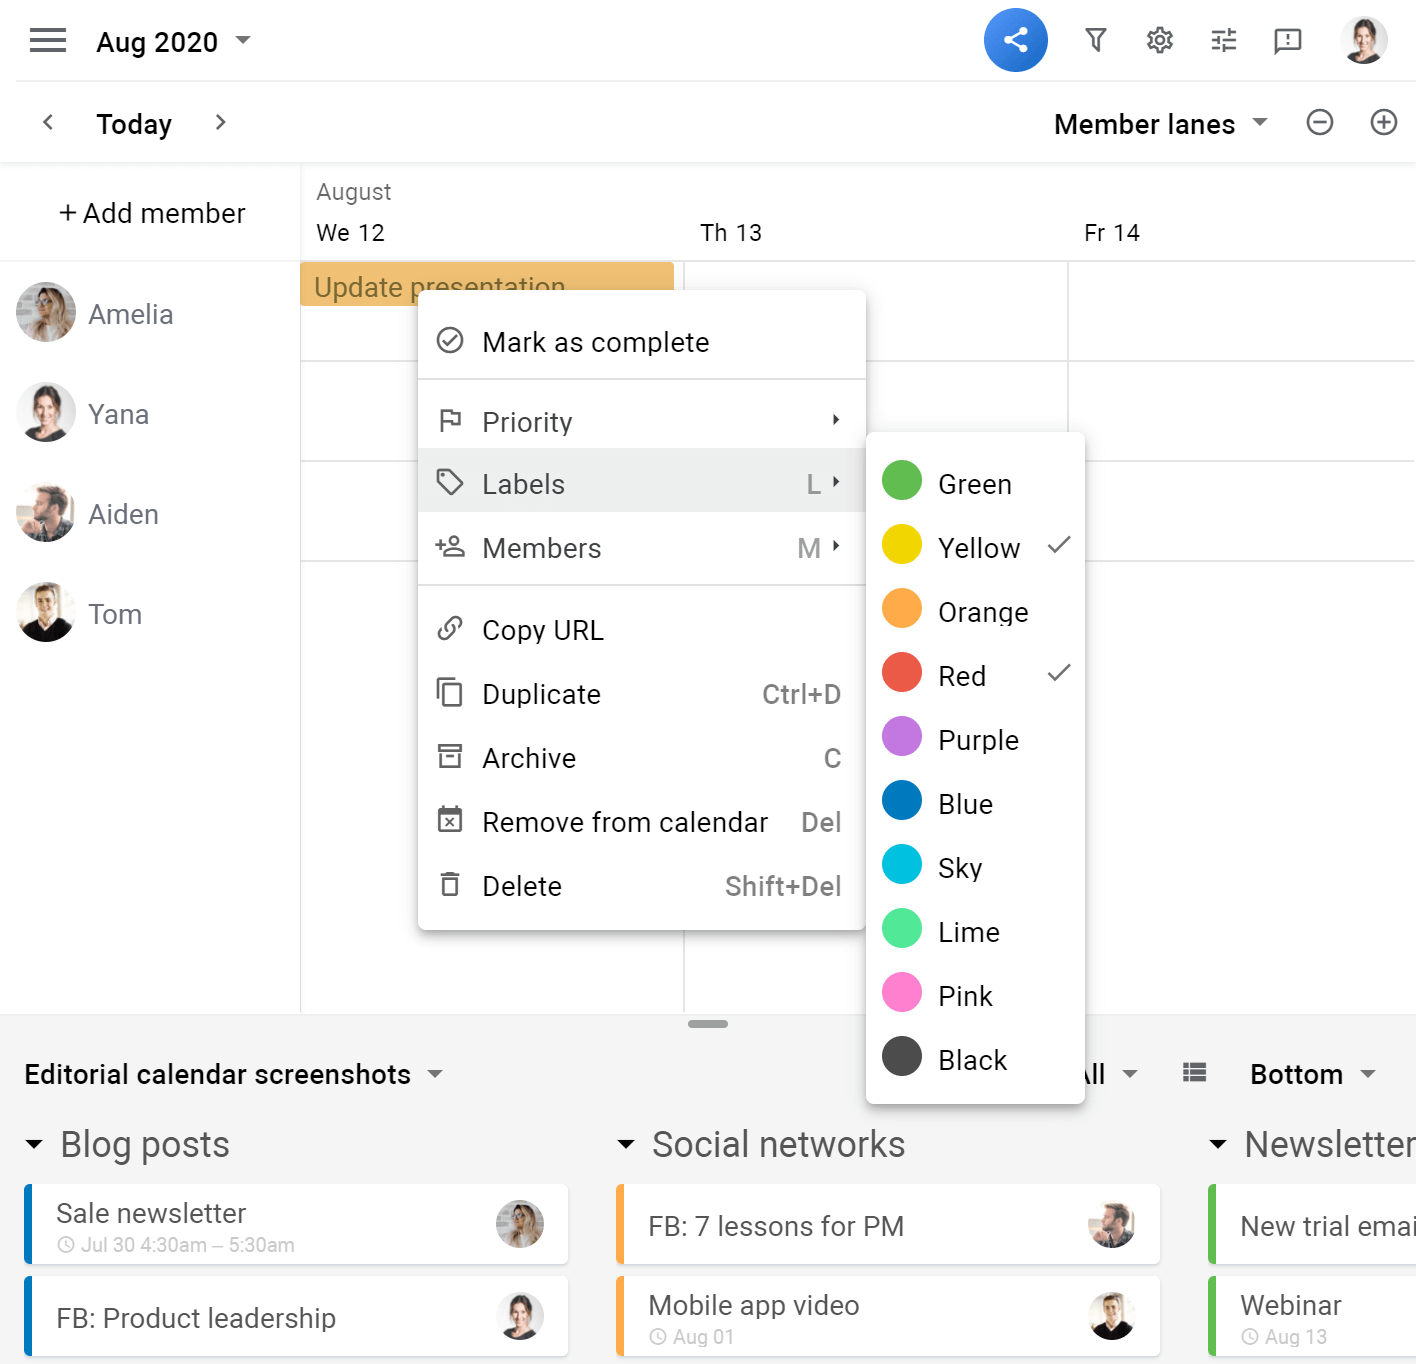 Planyway color-coding cards selecting color